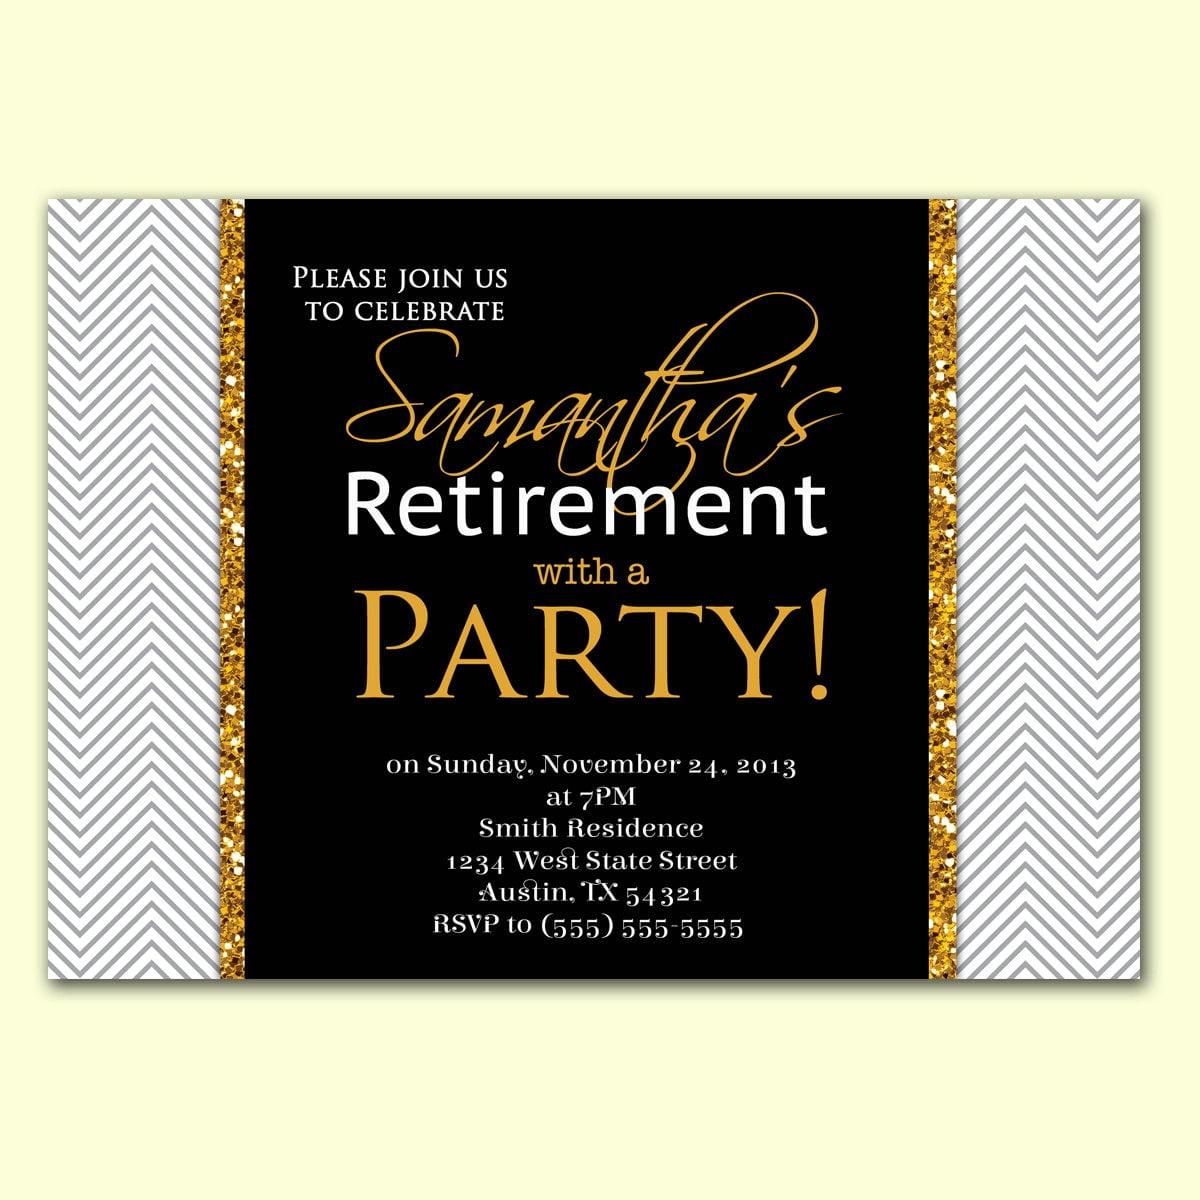 Retirement Party Invitations Retirement Party Invitations With An